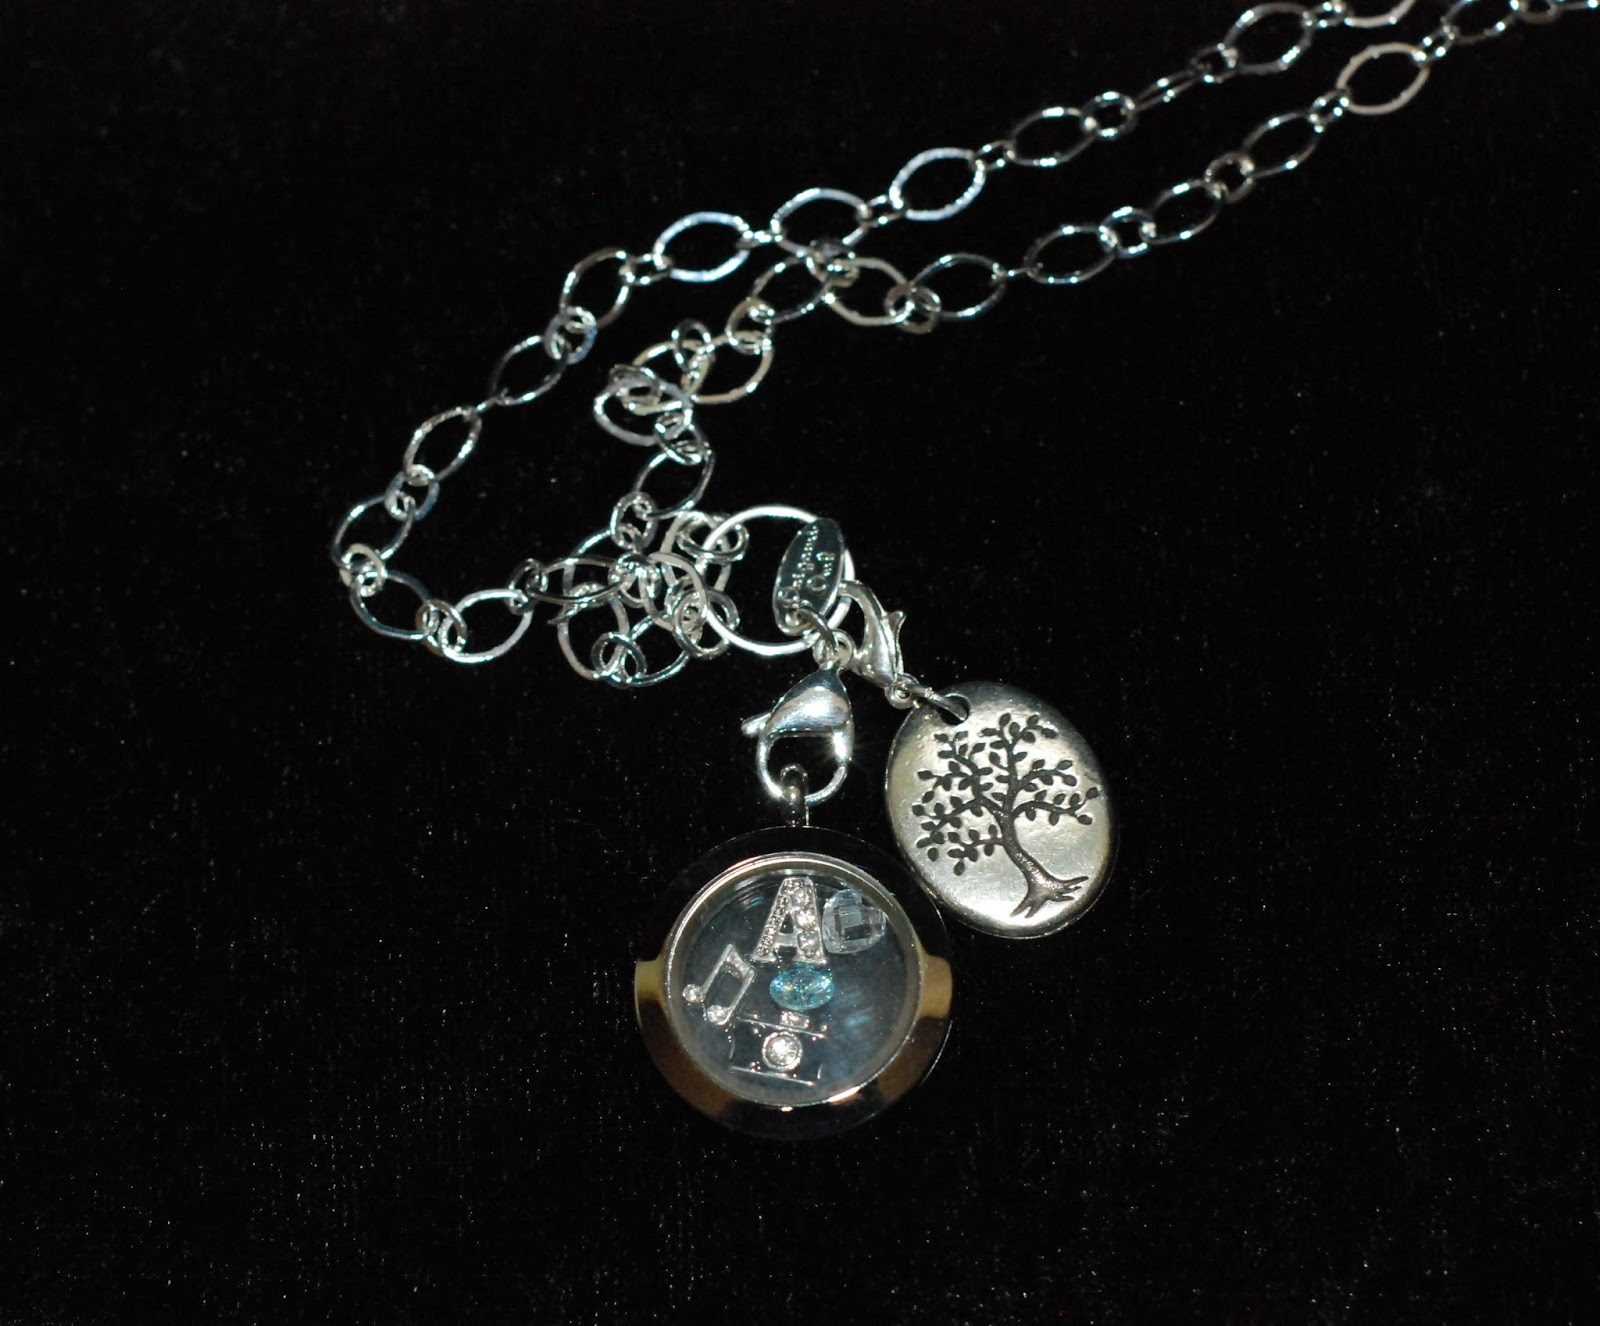 Origami Owl Fall 2013 Link Lockets! (With images) | Origami owl ... | 1326x1600